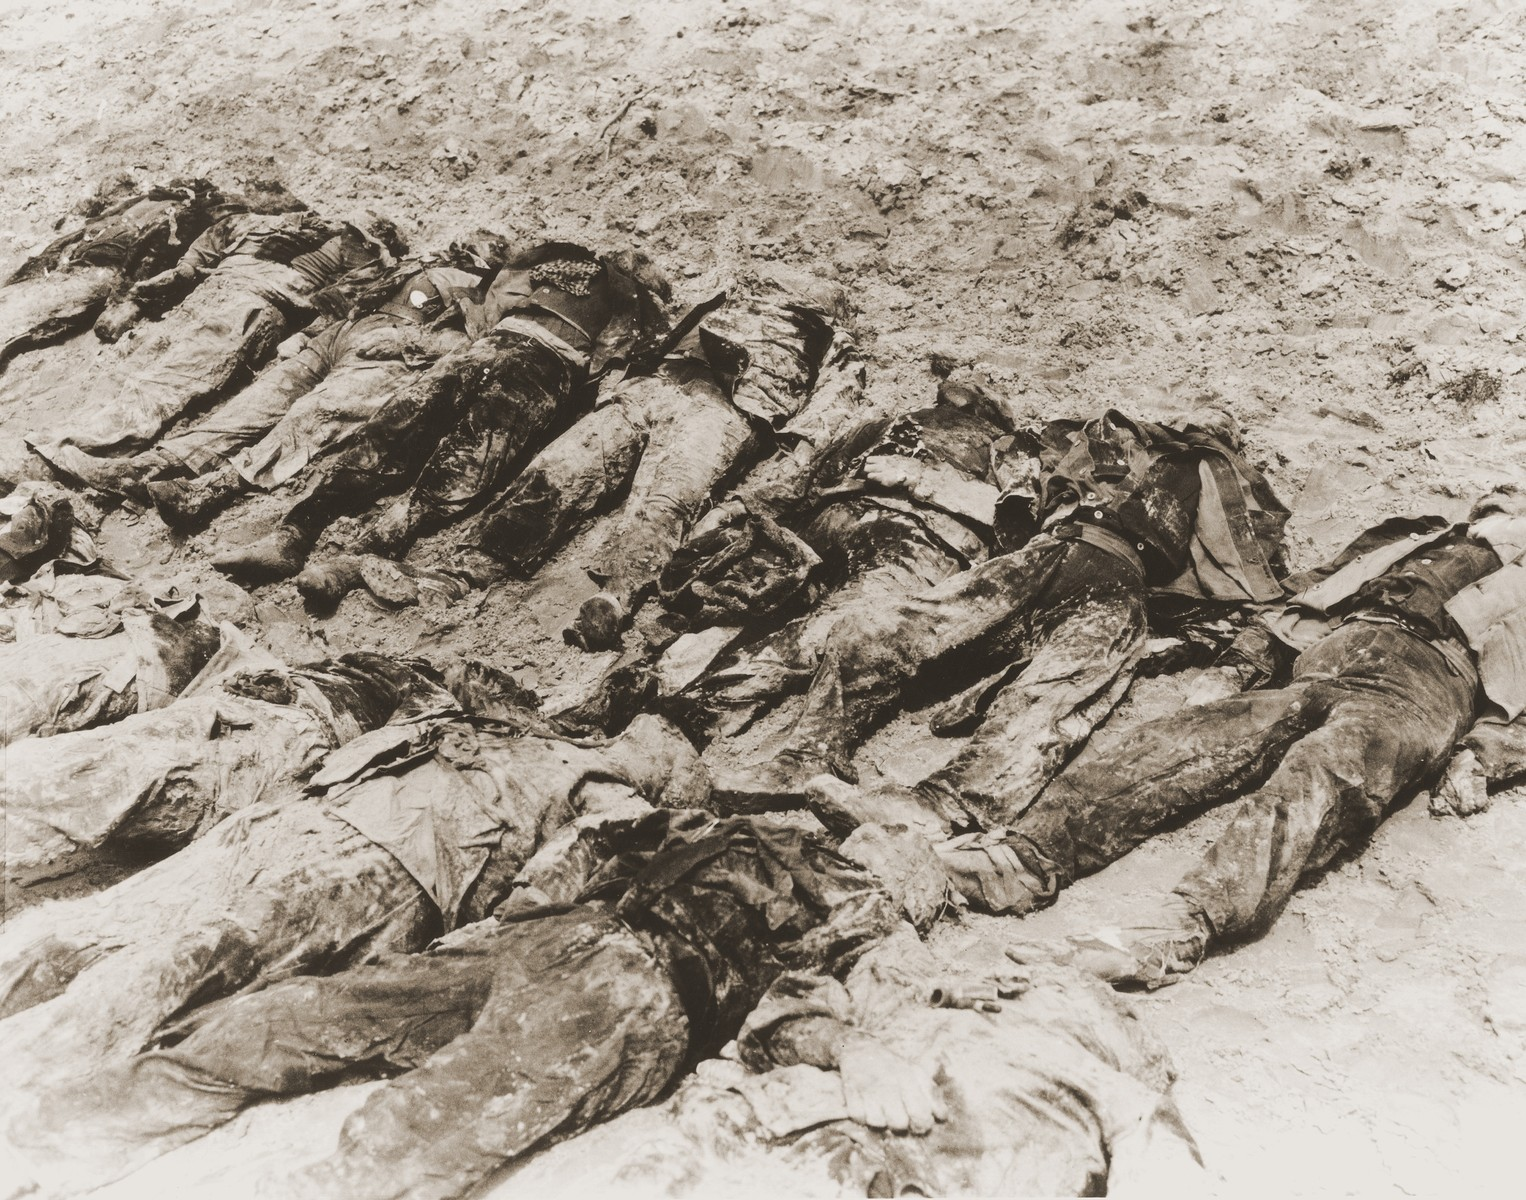 The bodies of political prisoners exhumed from a mass grave on Wenzelnberg near Solingen-Ohligs.    The victims, most of whom were taken from Luettringhausen prison, were shot and buried by the Gestapo following orders to eliminate all Reich enemies just before the end of the war.